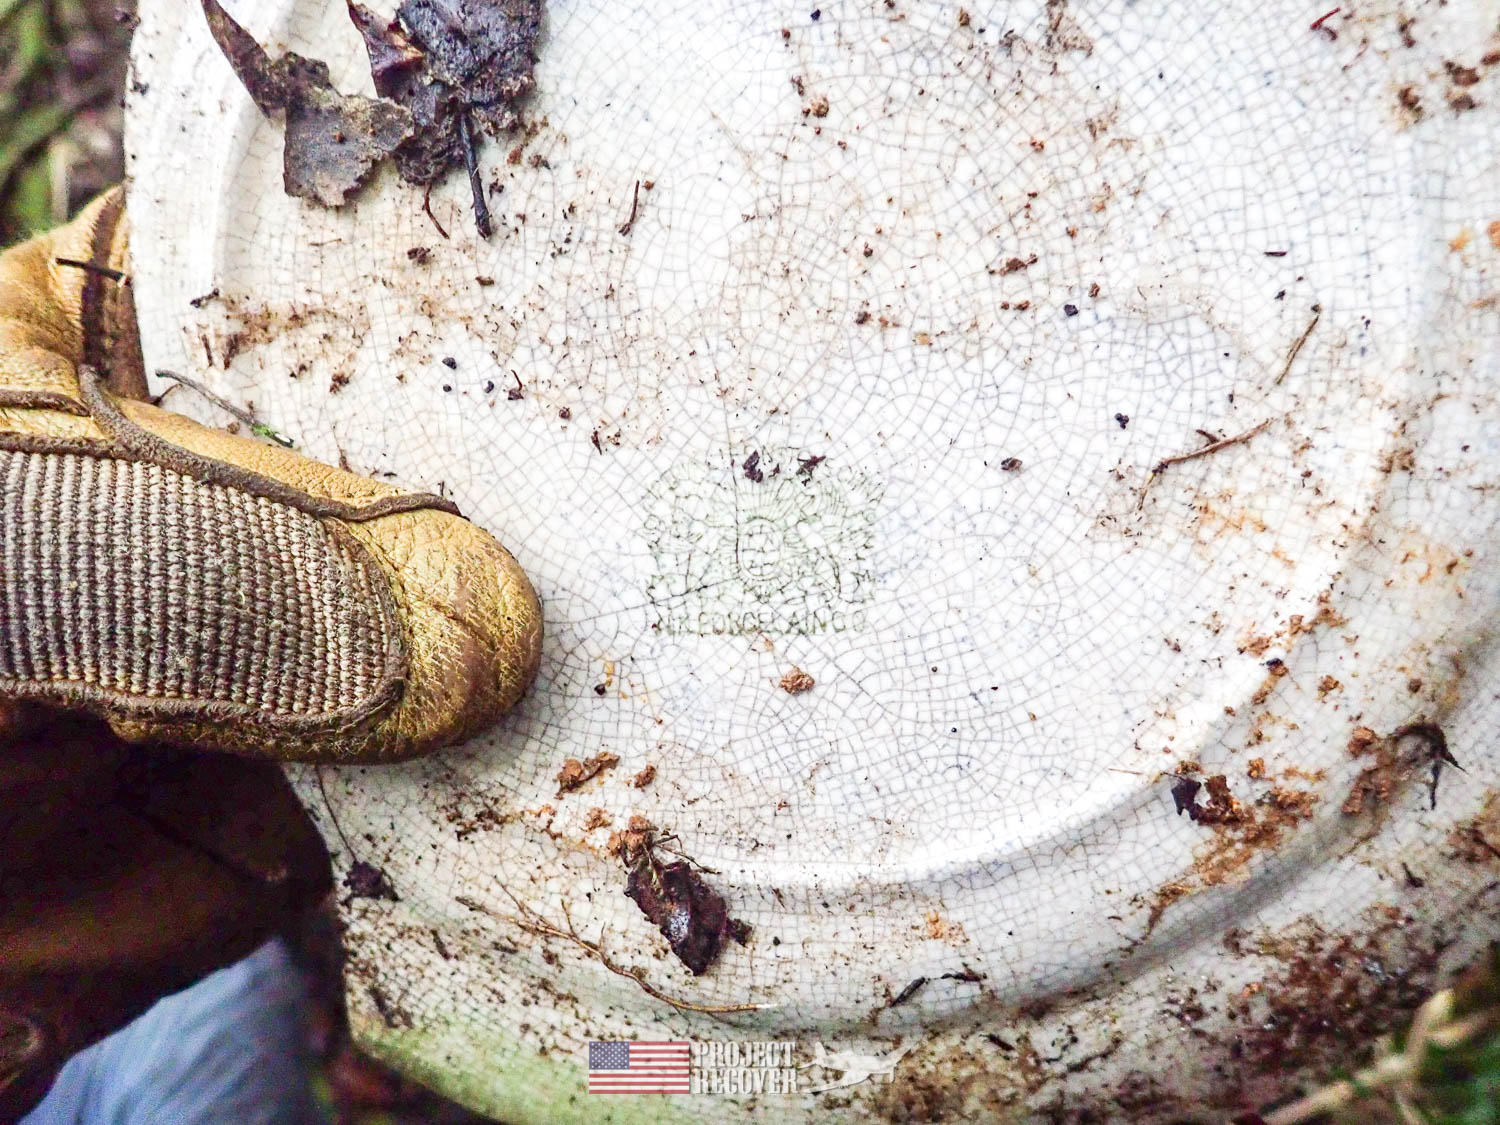 Japanese plate found in jungle. Execution of WWII POWs and Innocents in Palau - Project Recover is committed to bringing the MIA home. Photos by Harry Parker Photography.com